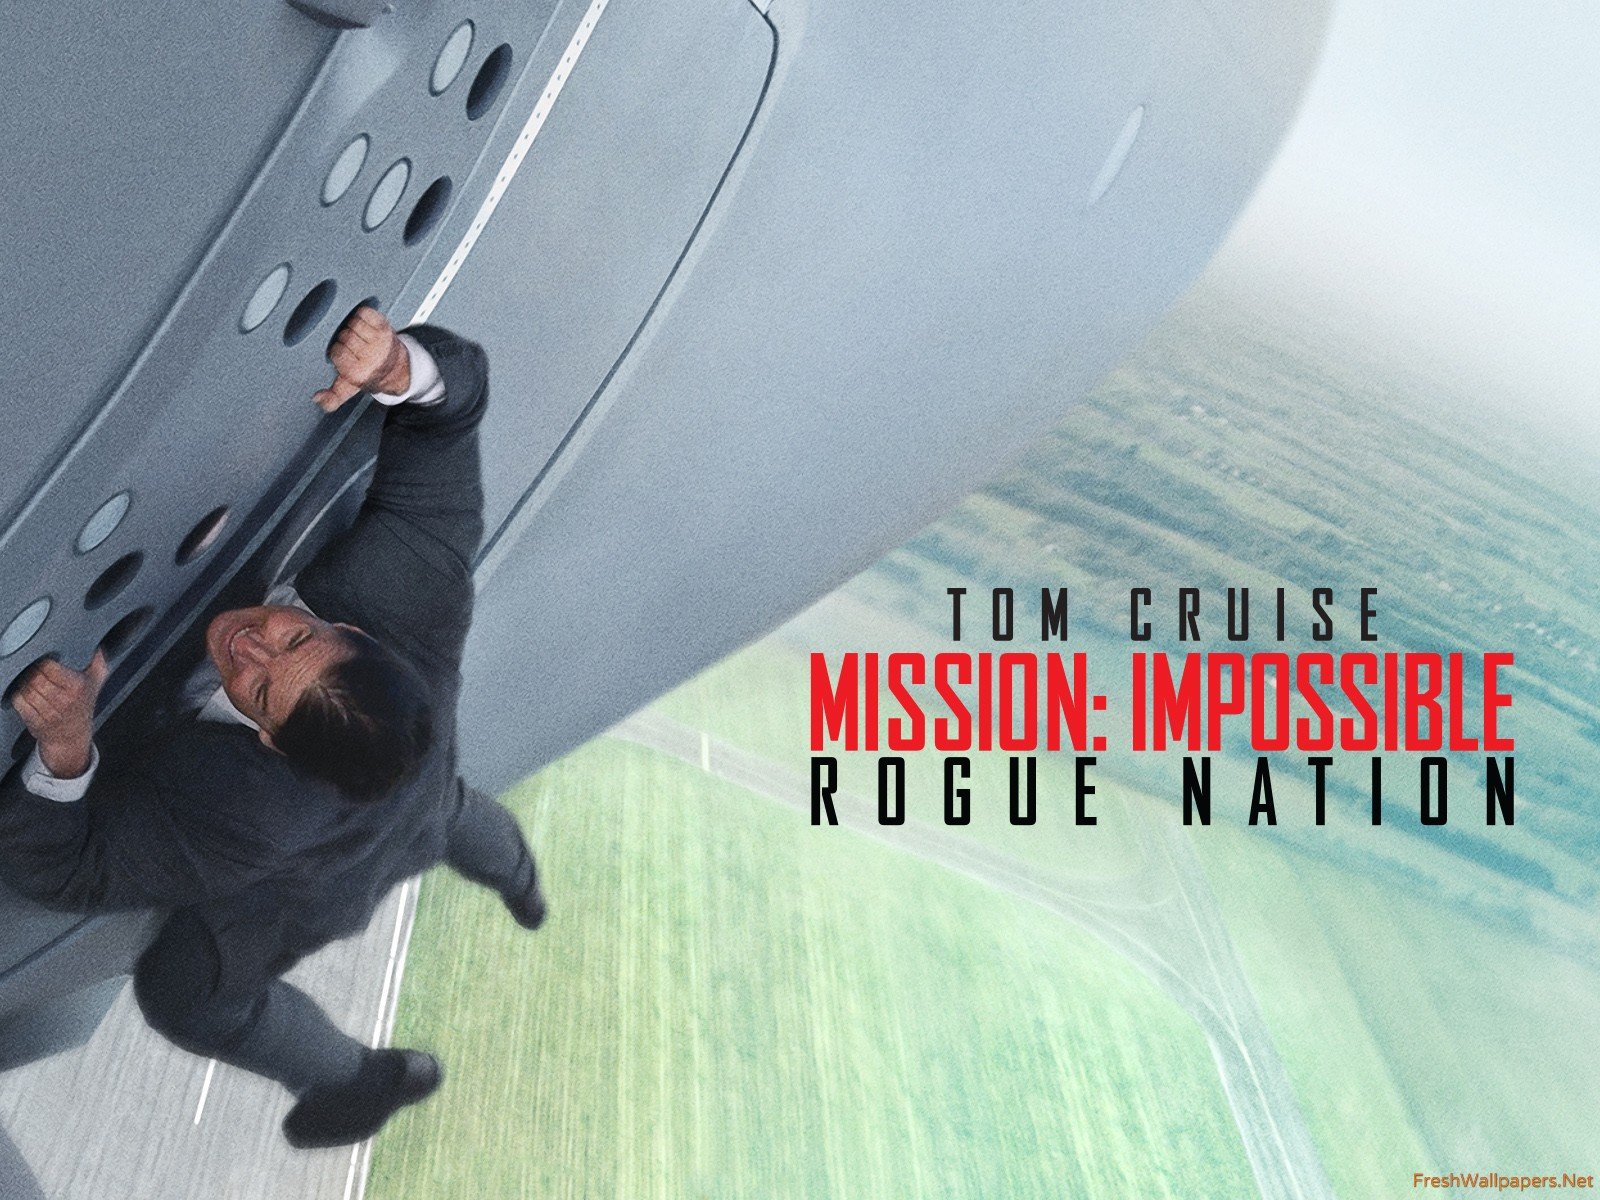 Mission_Impossible_2015_1600x1200.jpg